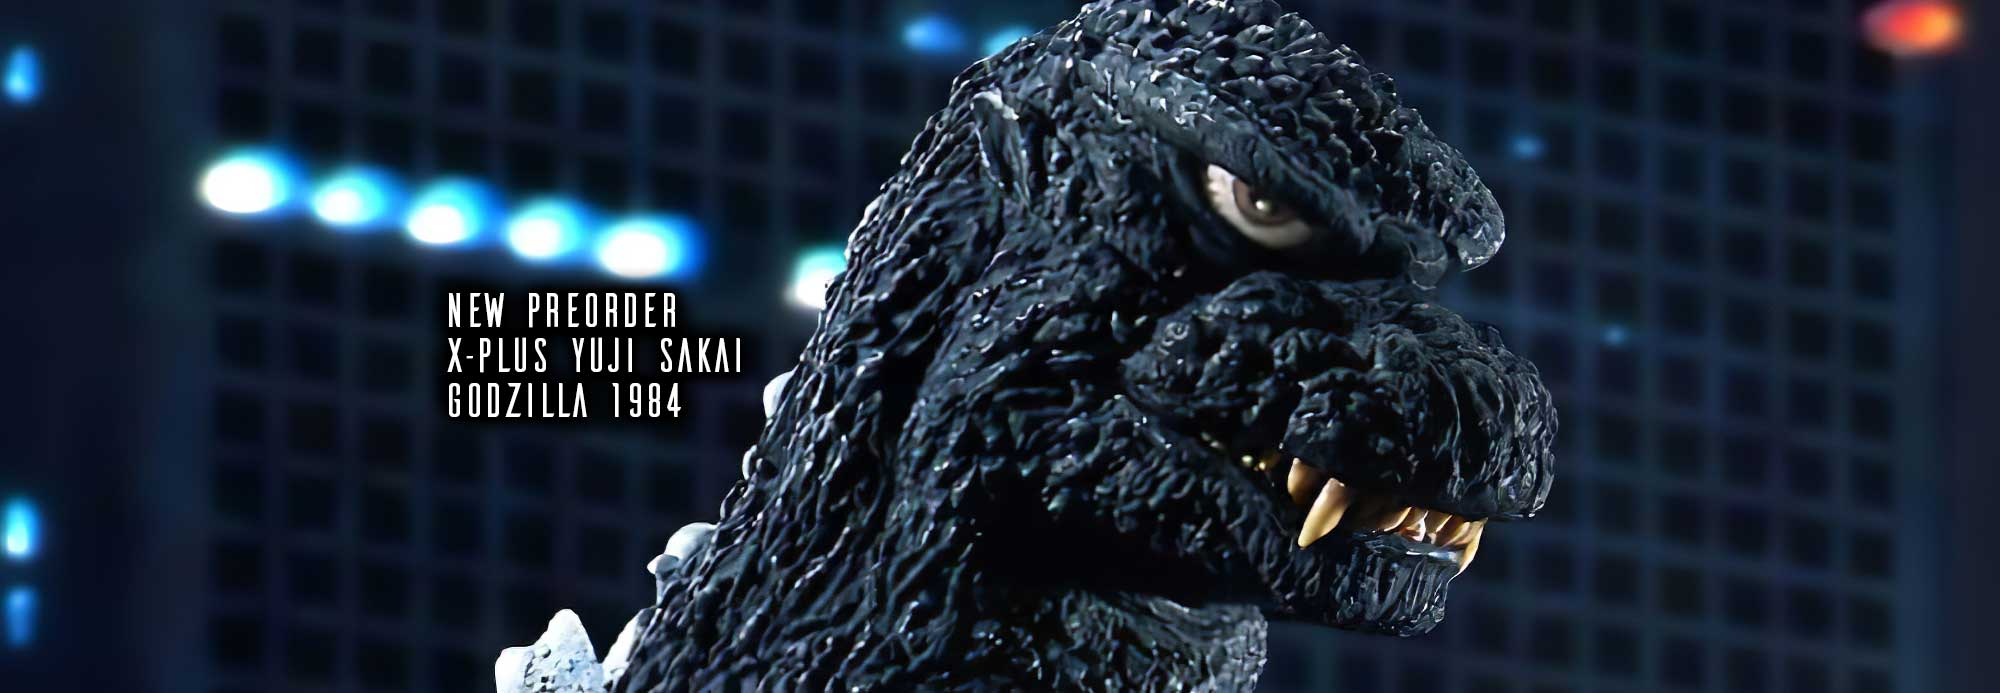 X-Plus 30cm Series Yuji Sakai Modeling Collection Godzilla 1984 vinyl figure.